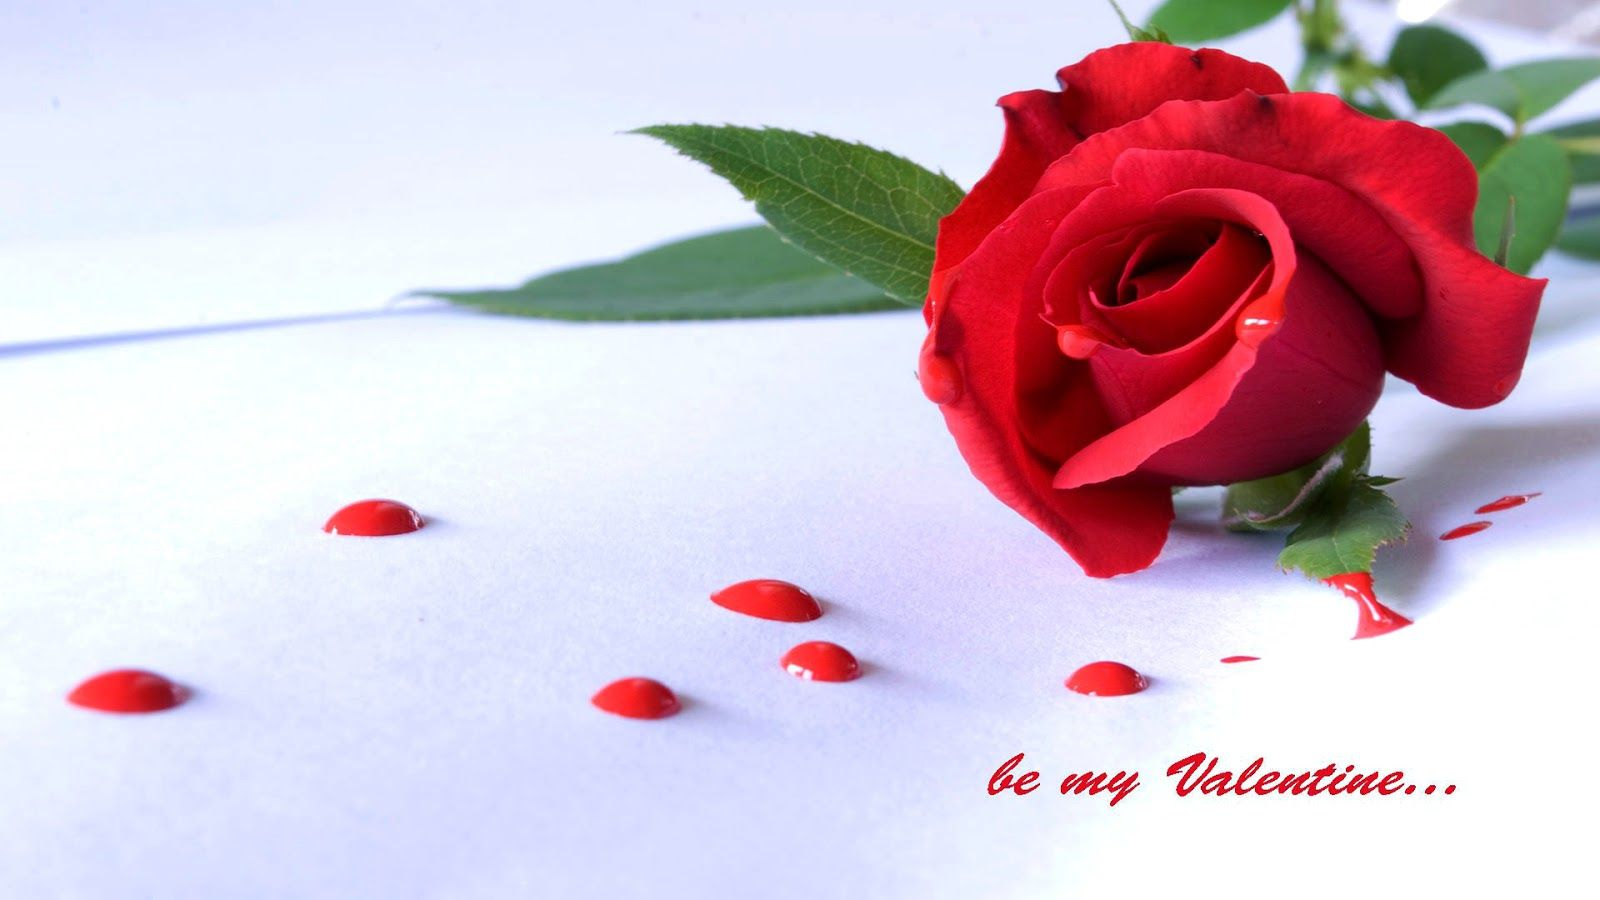 Happy Rose Day Wallpapers Hd Download Free 1080p - Gulab I Love You , HD Wallpaper & Backgrounds